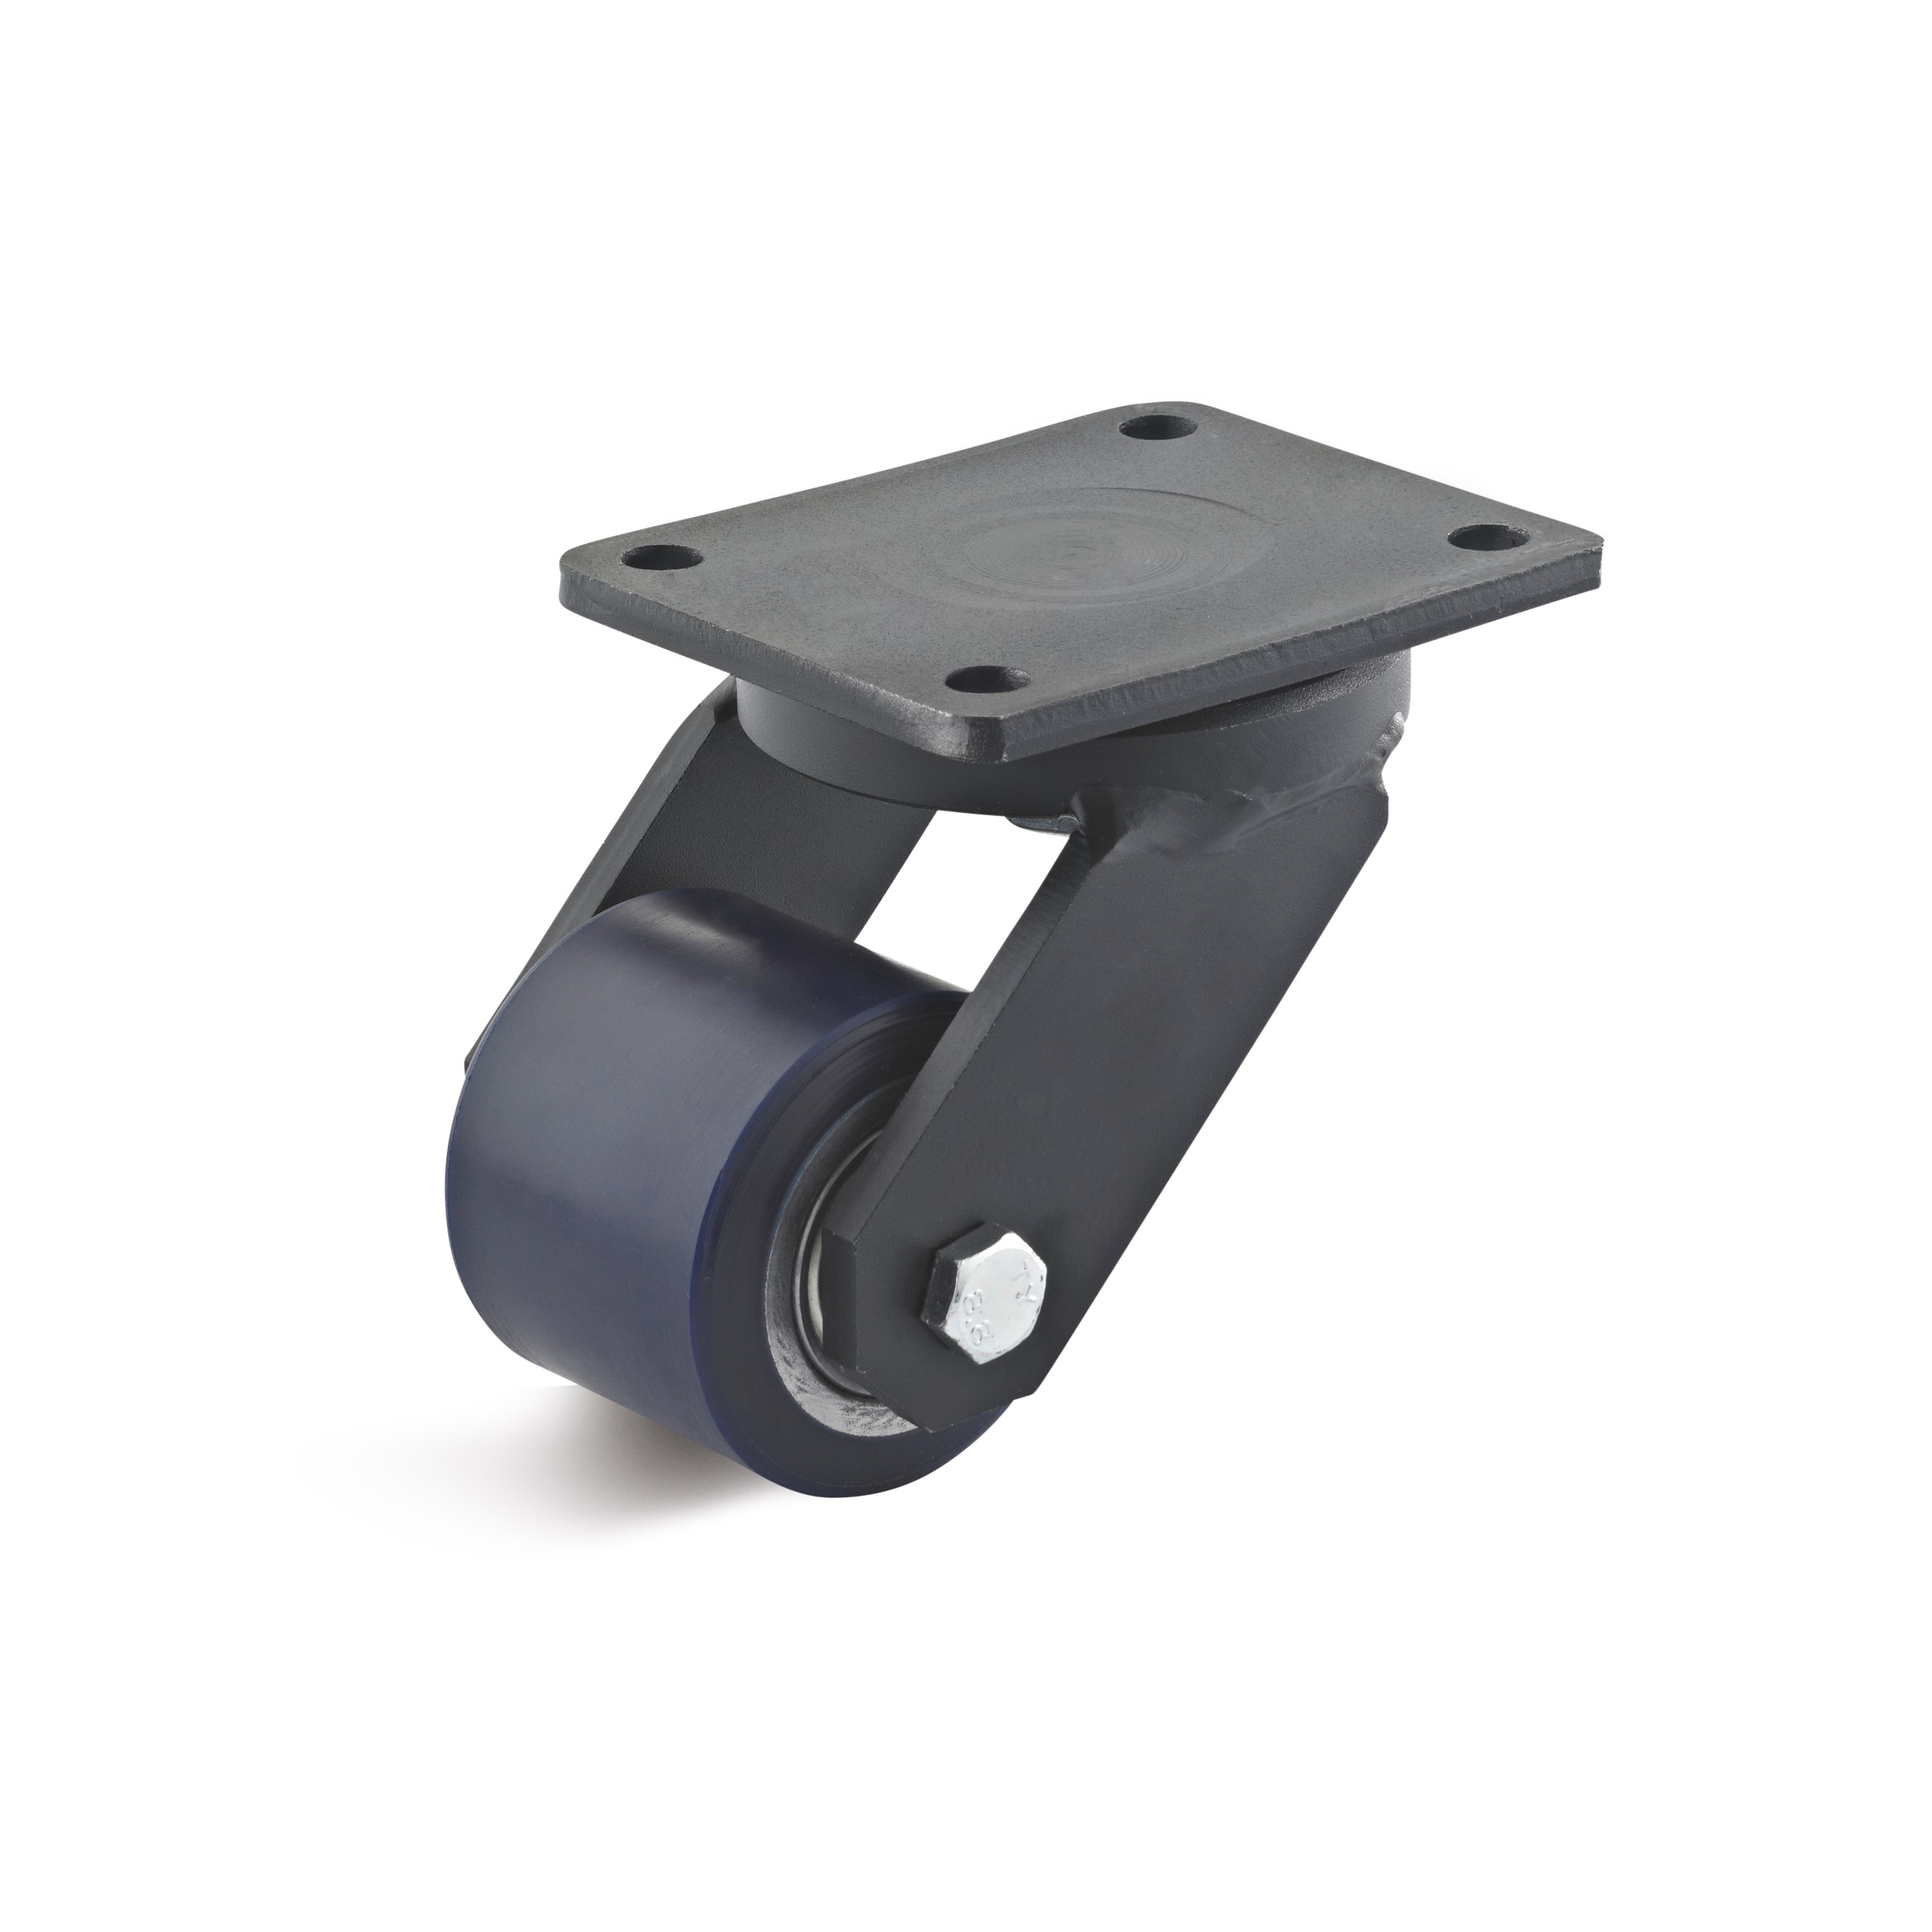 Swivel castor with high load capacity at low height